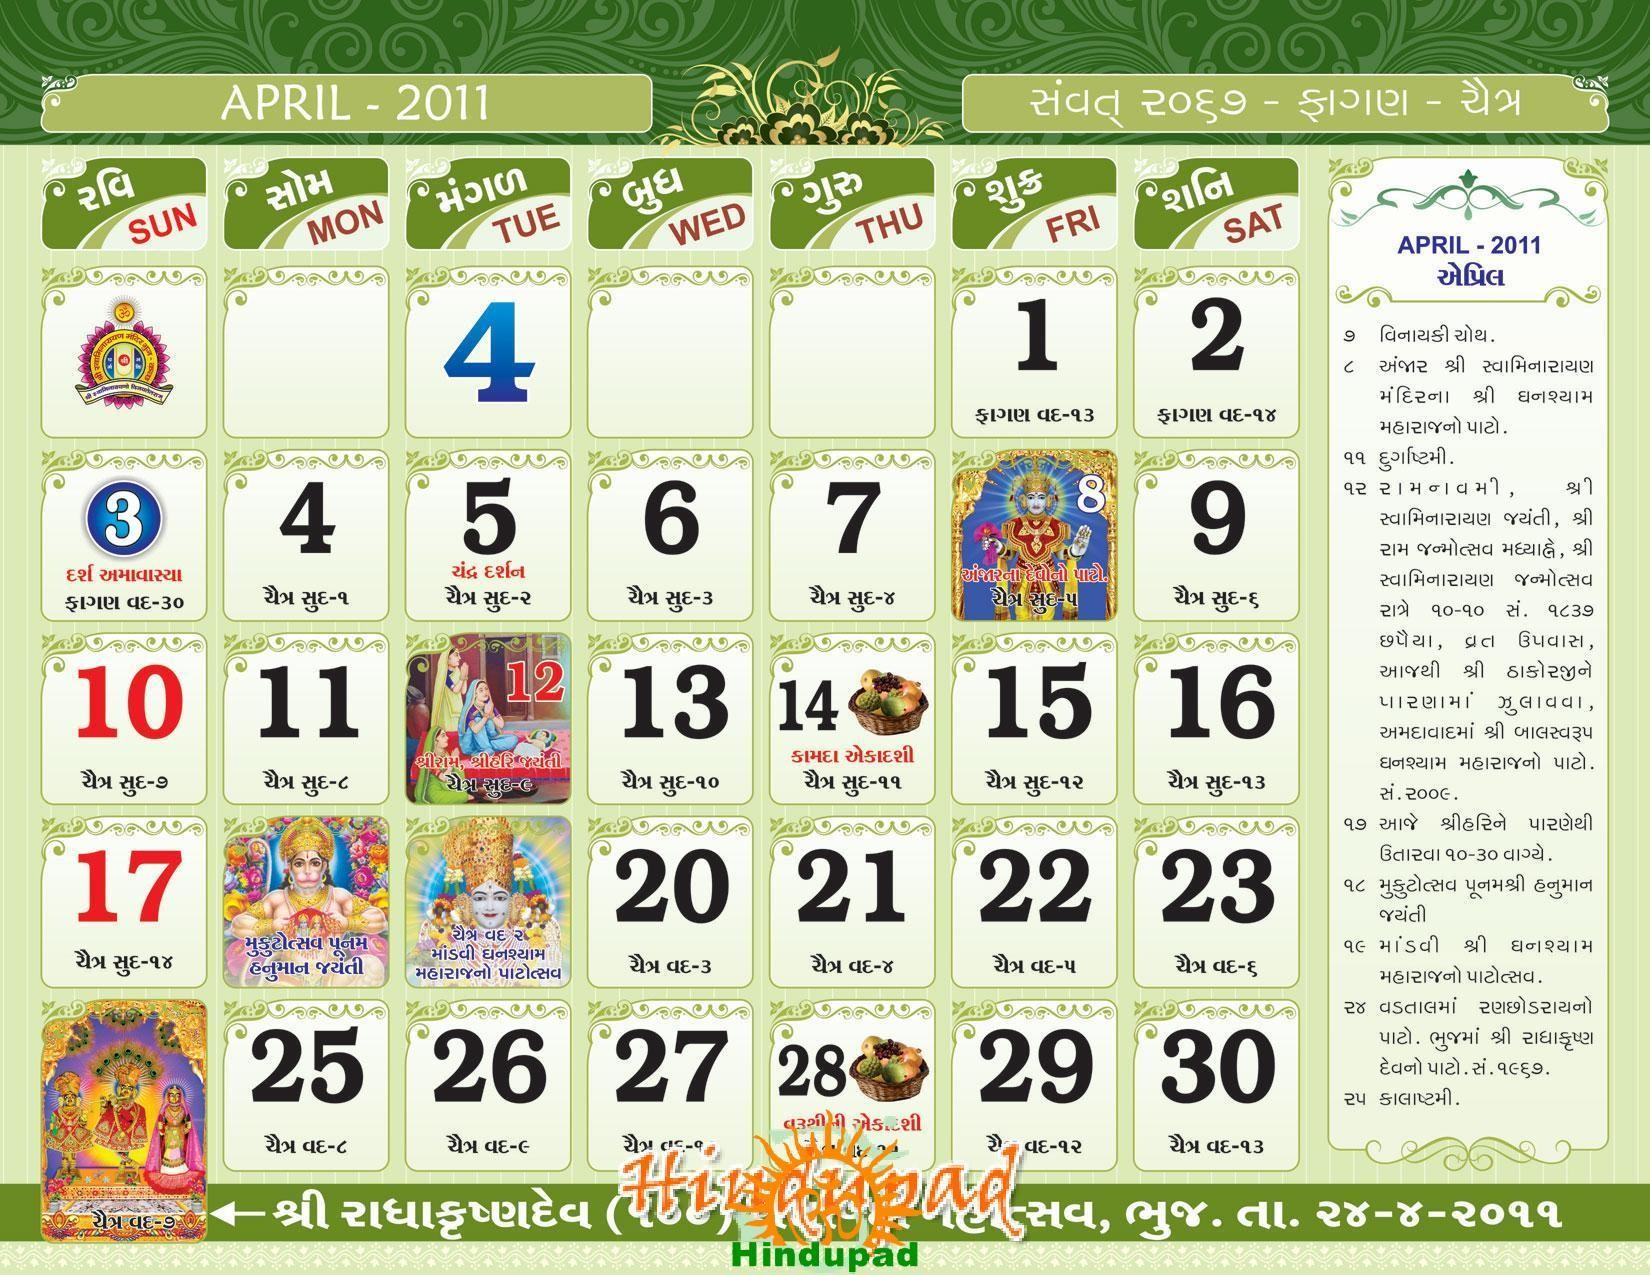 Gujarati Calendar March 2018 Más Populares Baps Calendar 2018 Choghadiya Of Gujarati Calendar March 2018 Más Recientemente Liberado 2018 Navaratri Festival In India Essential Guide